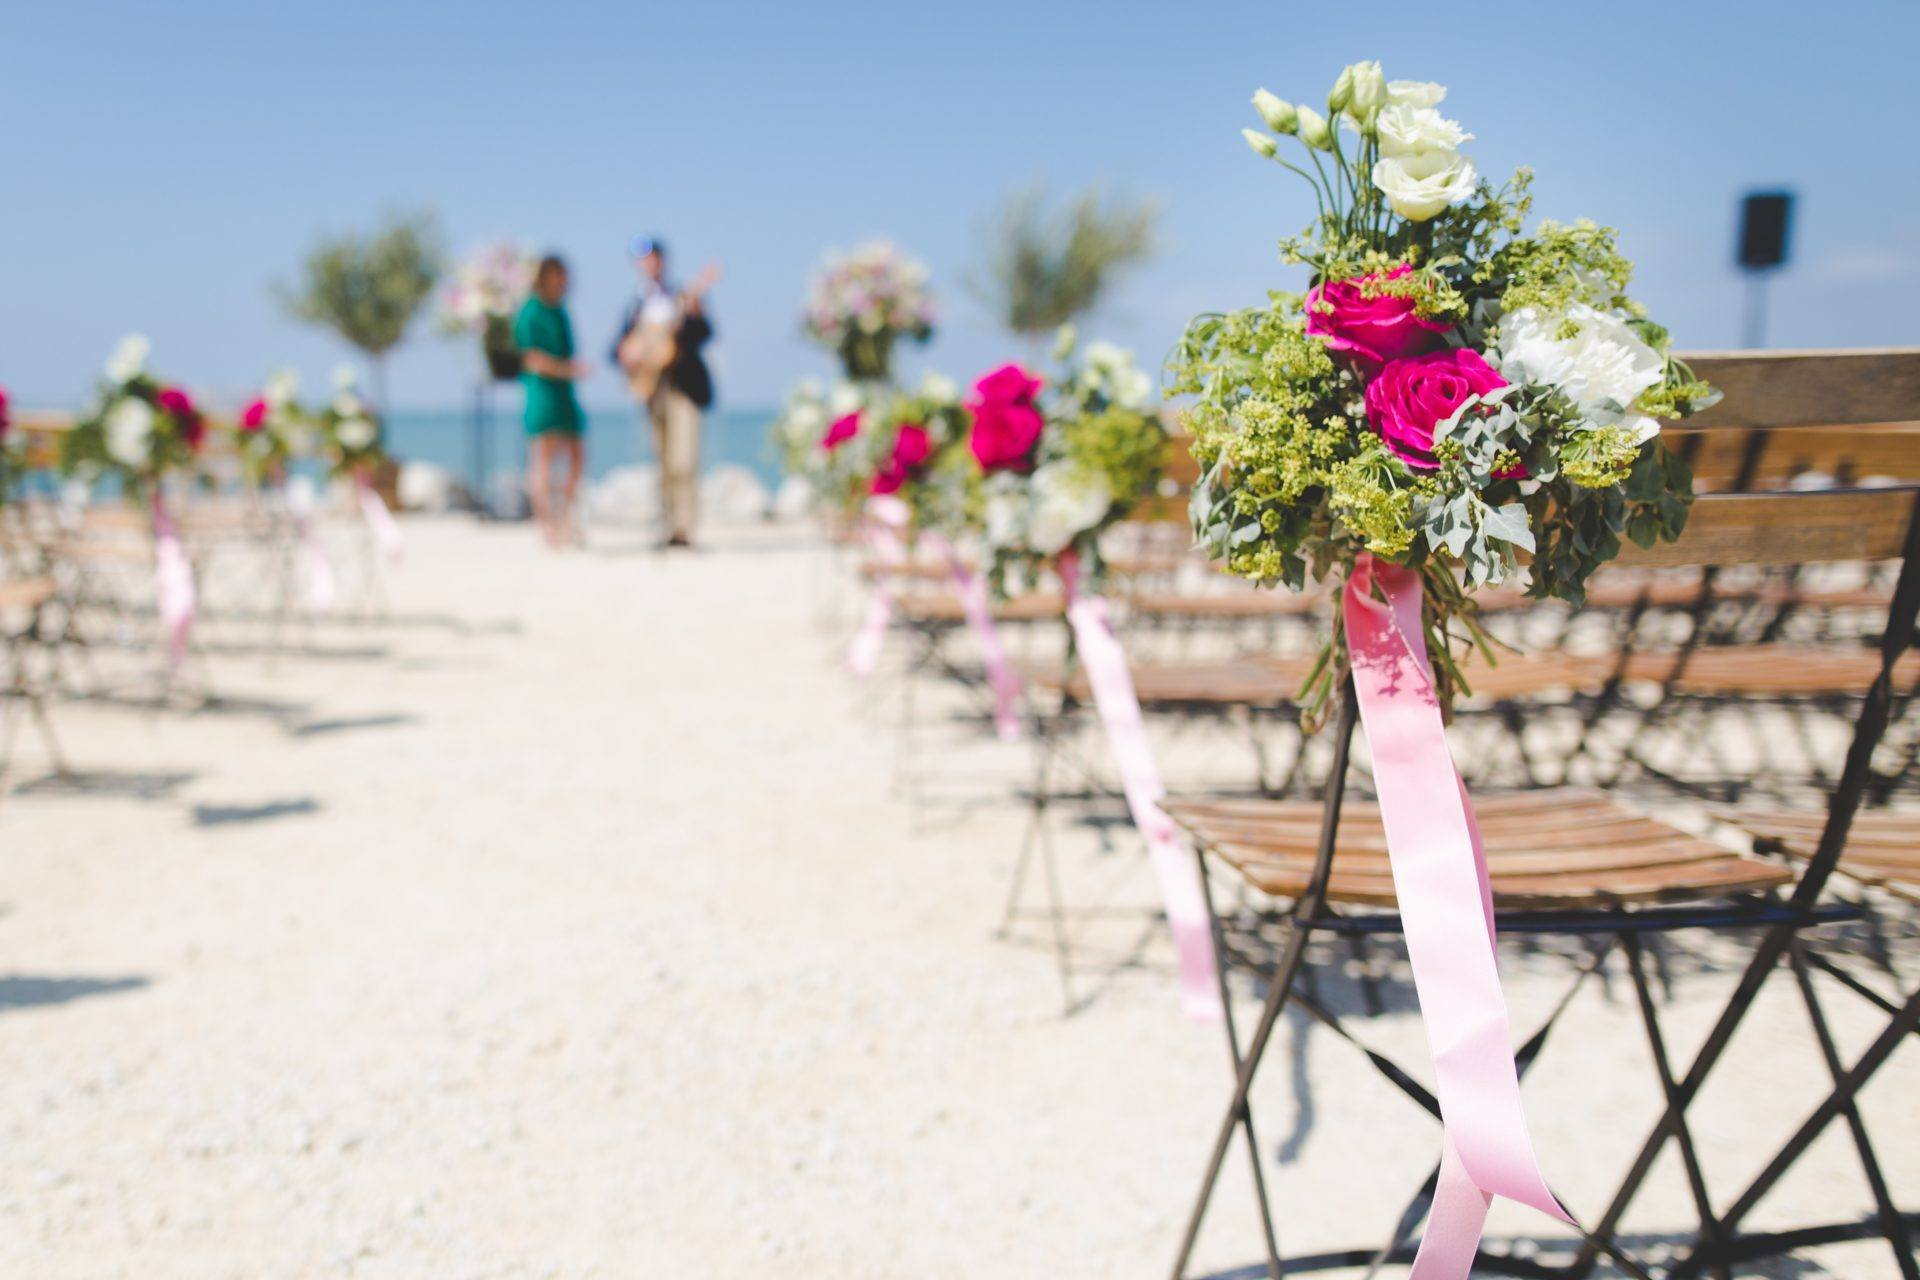 Chairs set up for beach wedding.